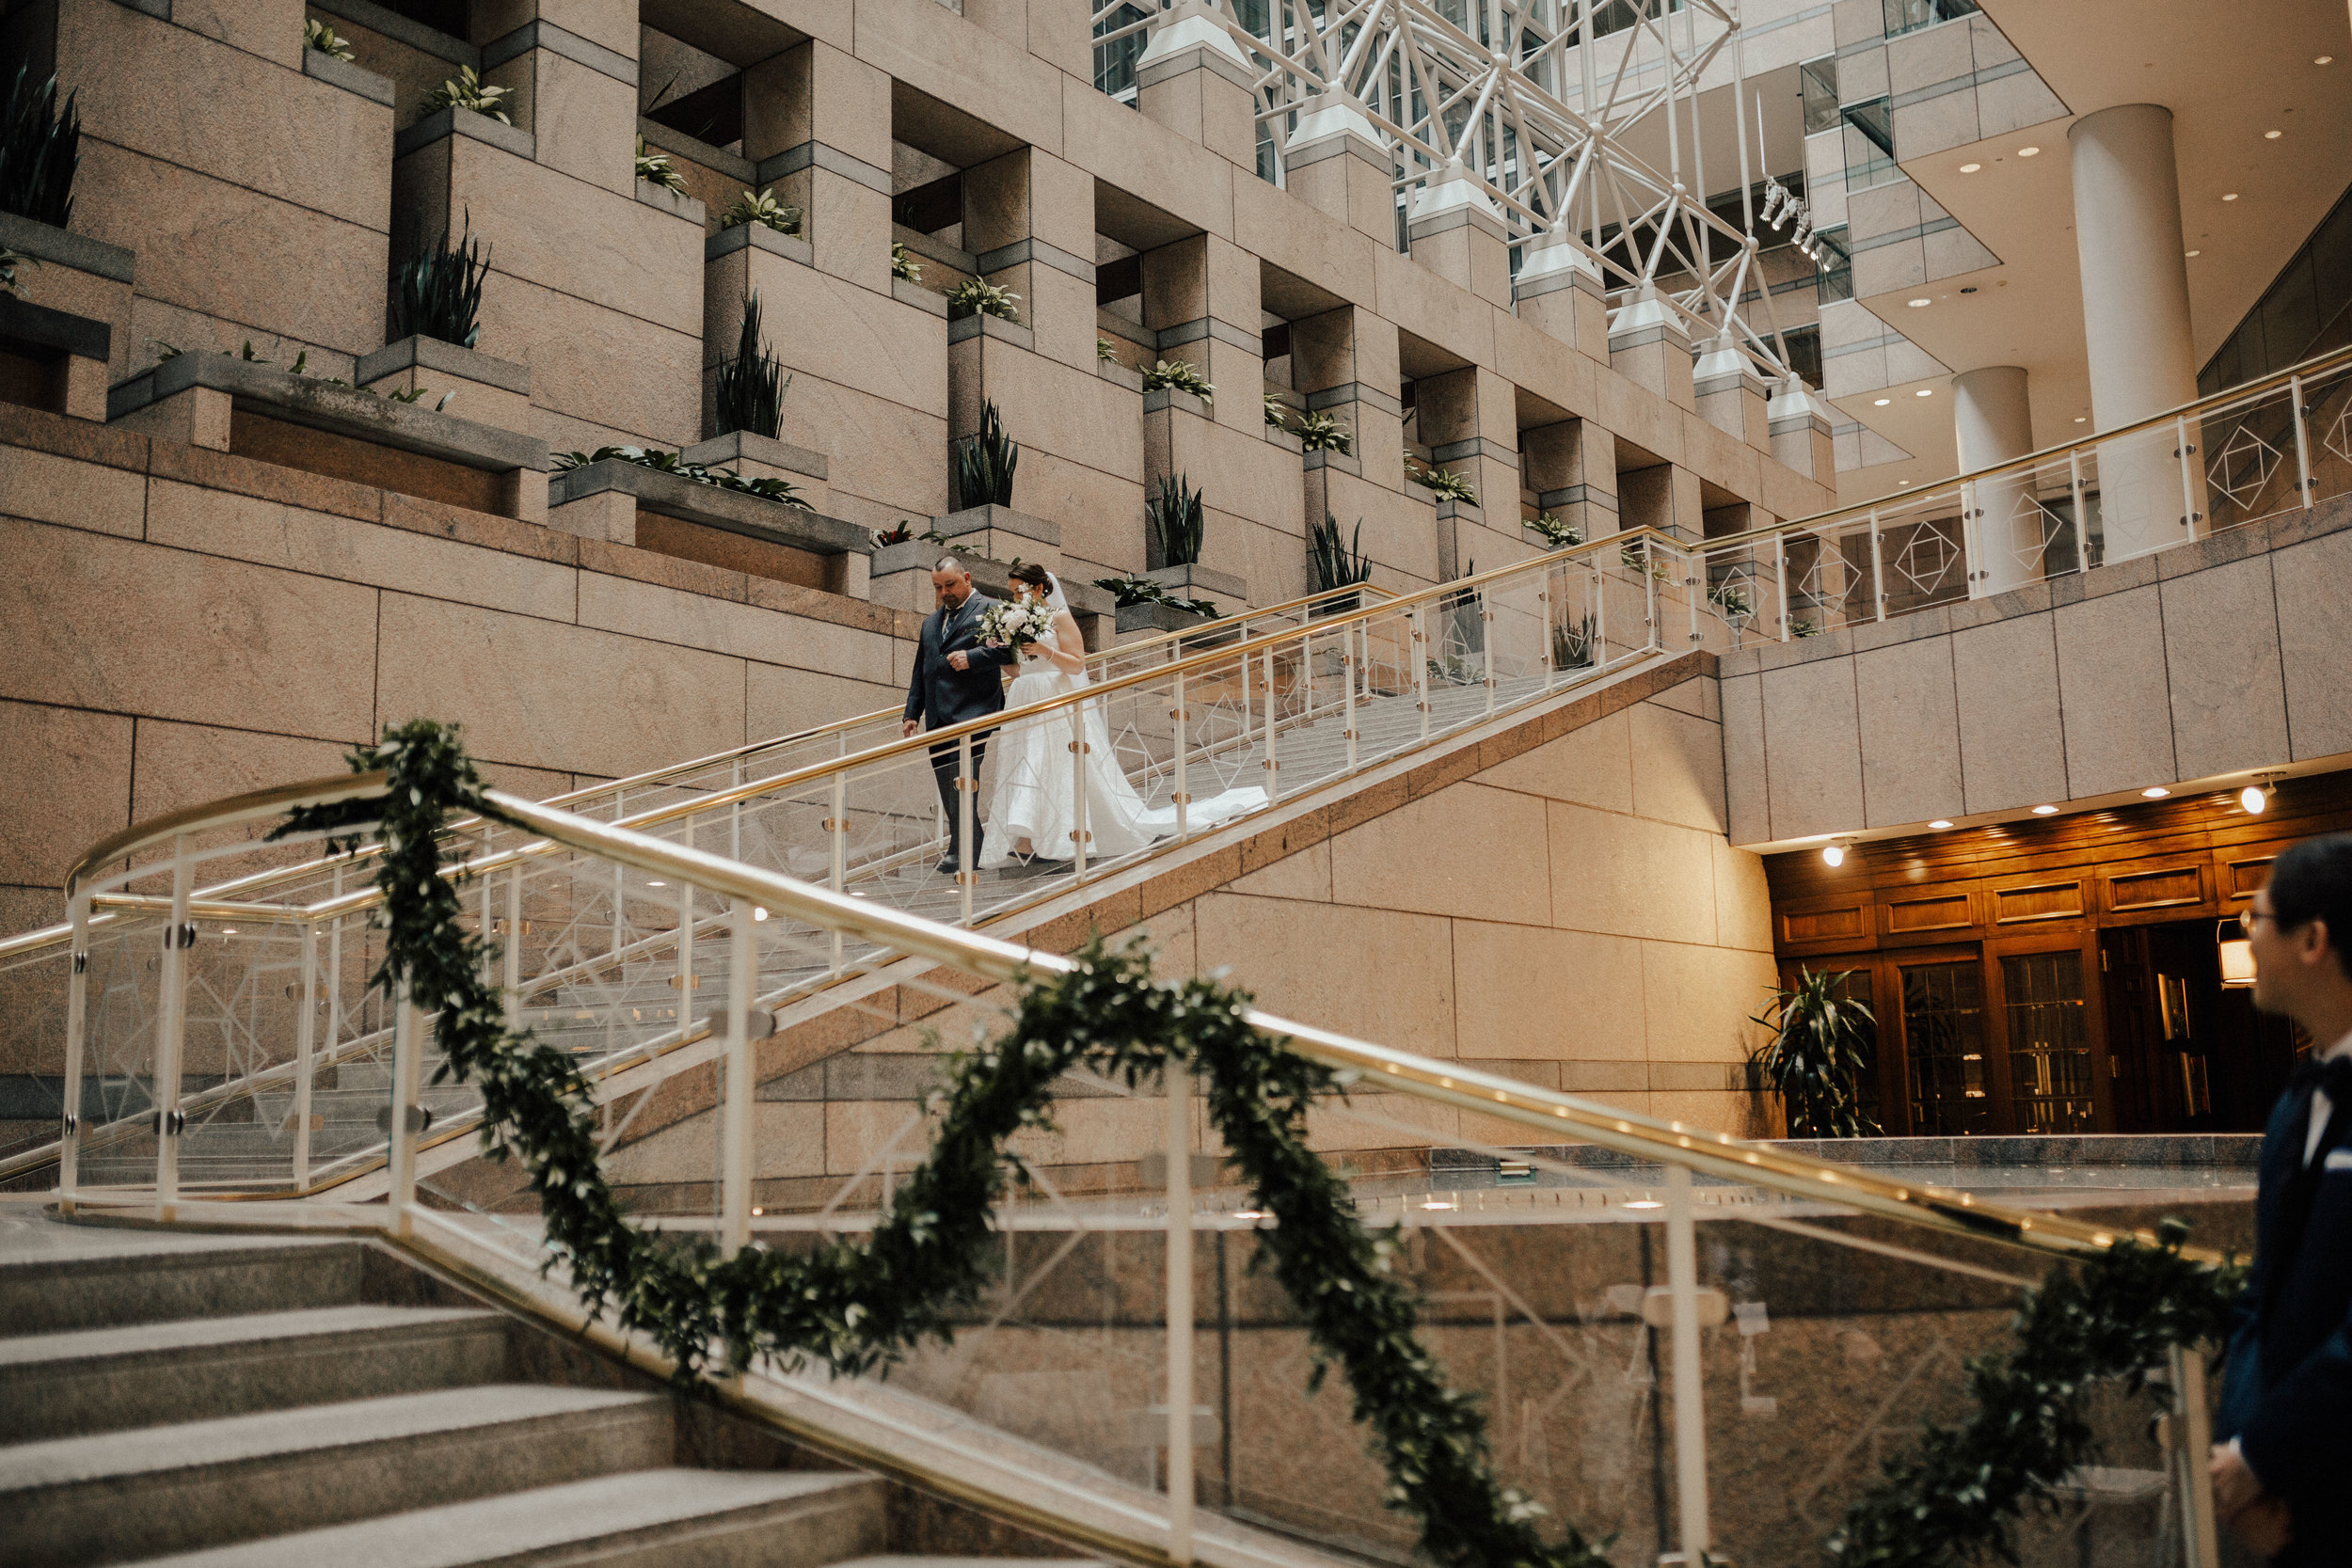 City Club of Washington  - I kicked off my 2018 wedding season here and I'm so glad that I did. There's so much natural light at this venue and a gorgeous staircase to walk down to meet your husband-to-be.